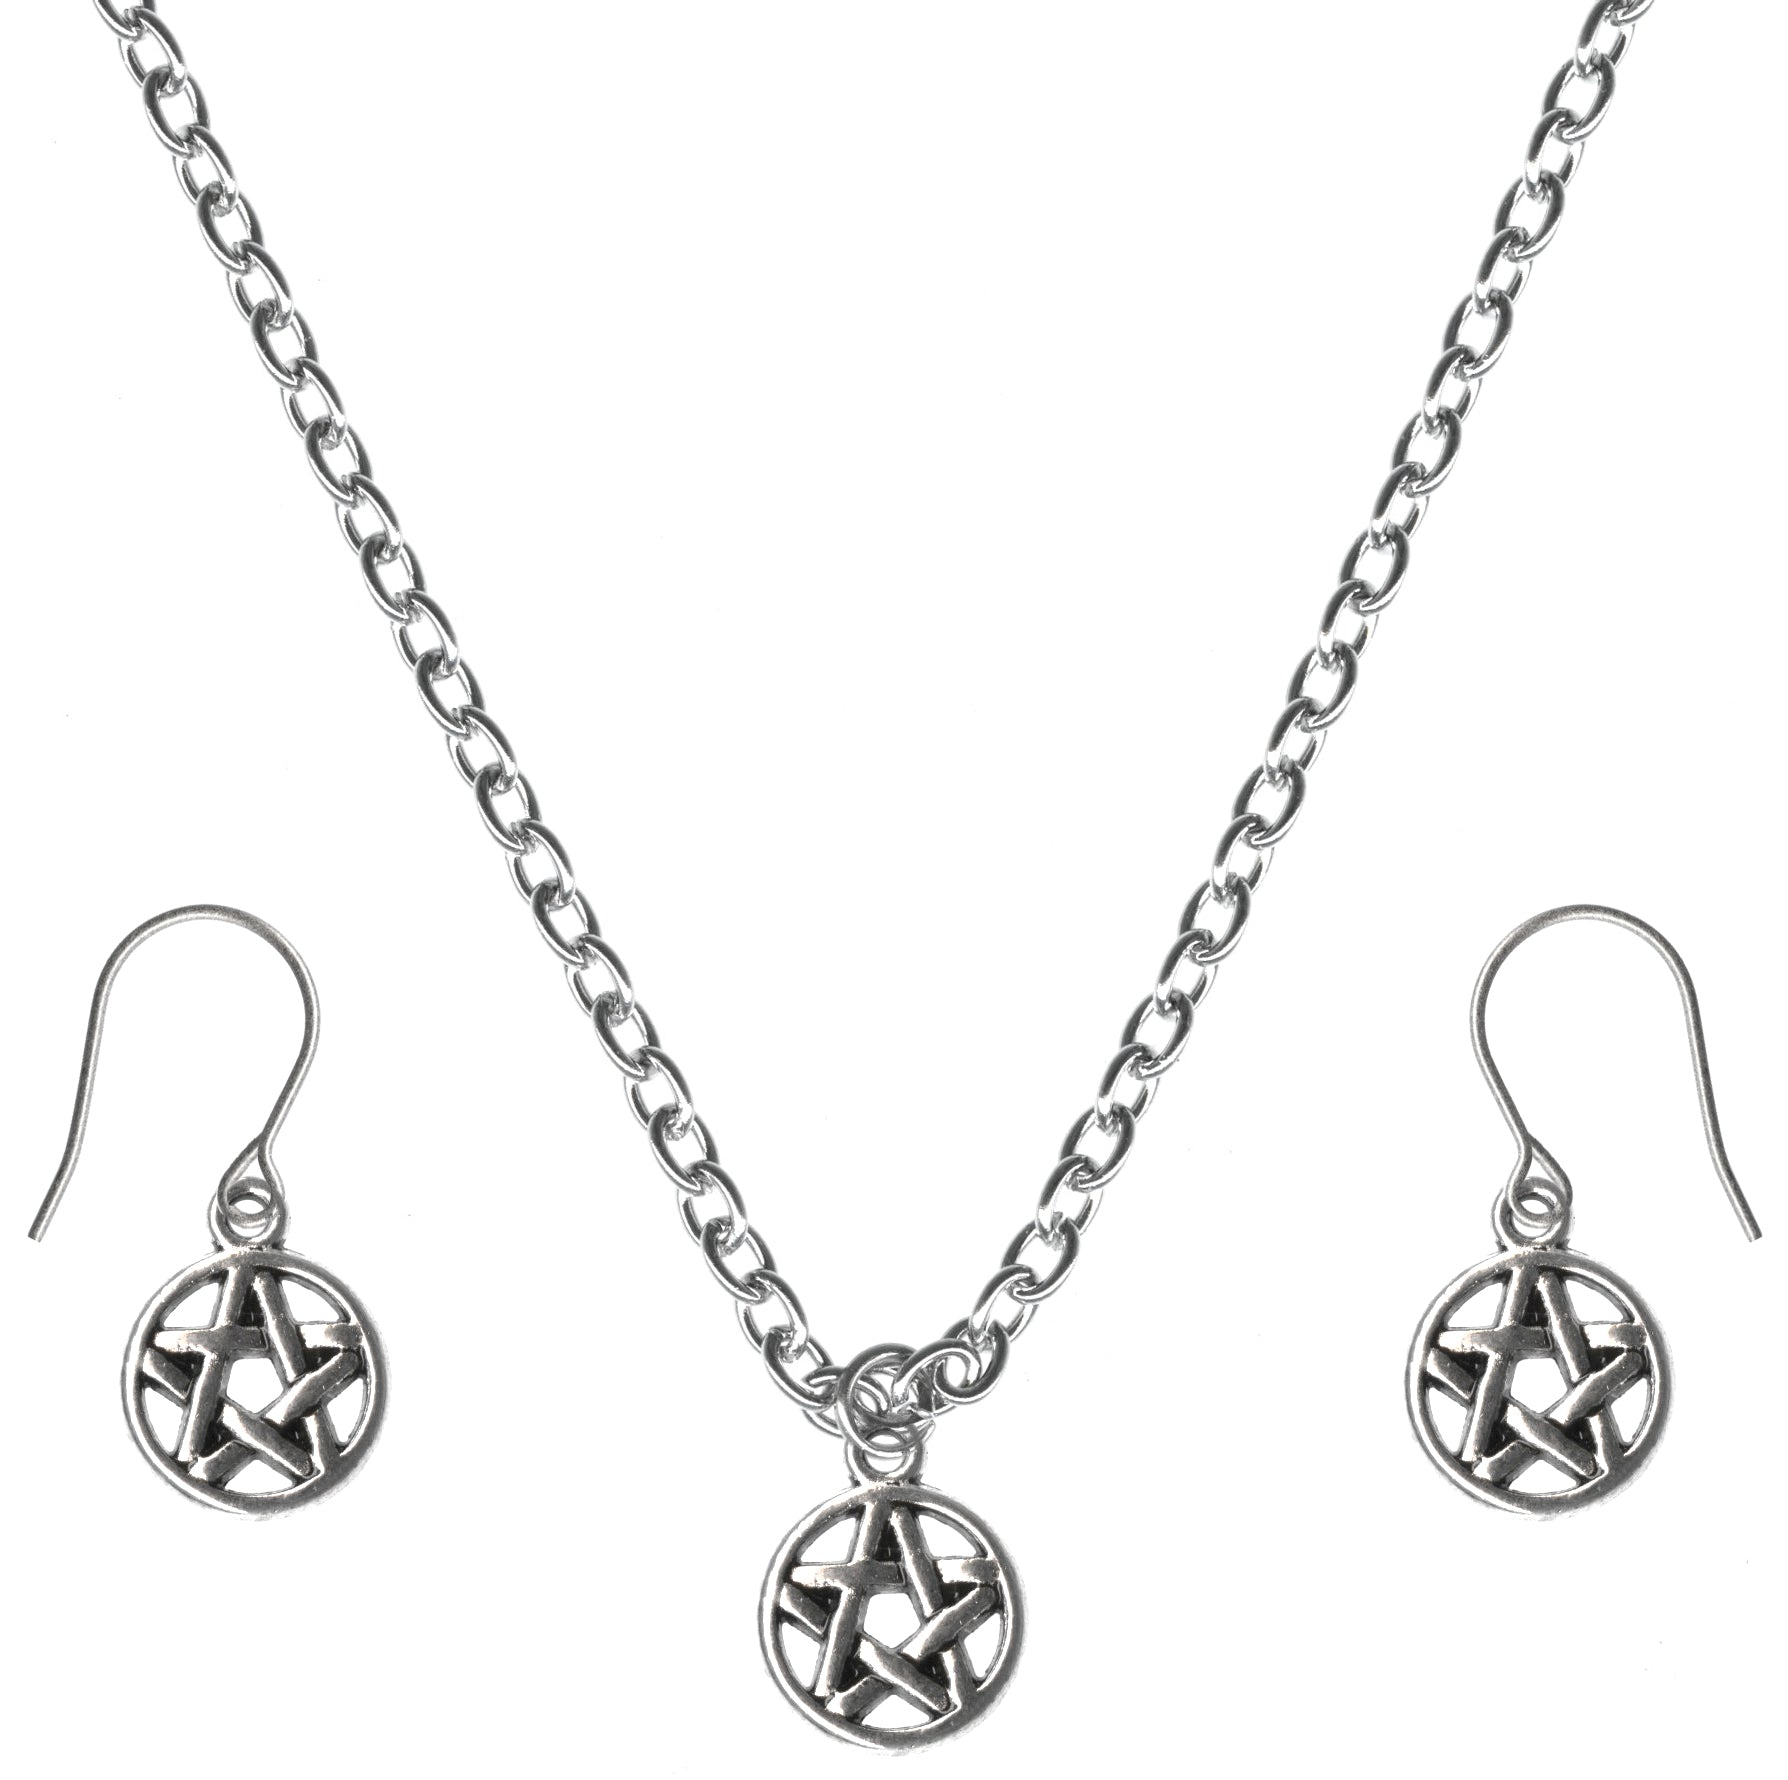 Mini Pentacle Charm Steel Chain Necklace and Hypoallergenic Titanium Earrings Set